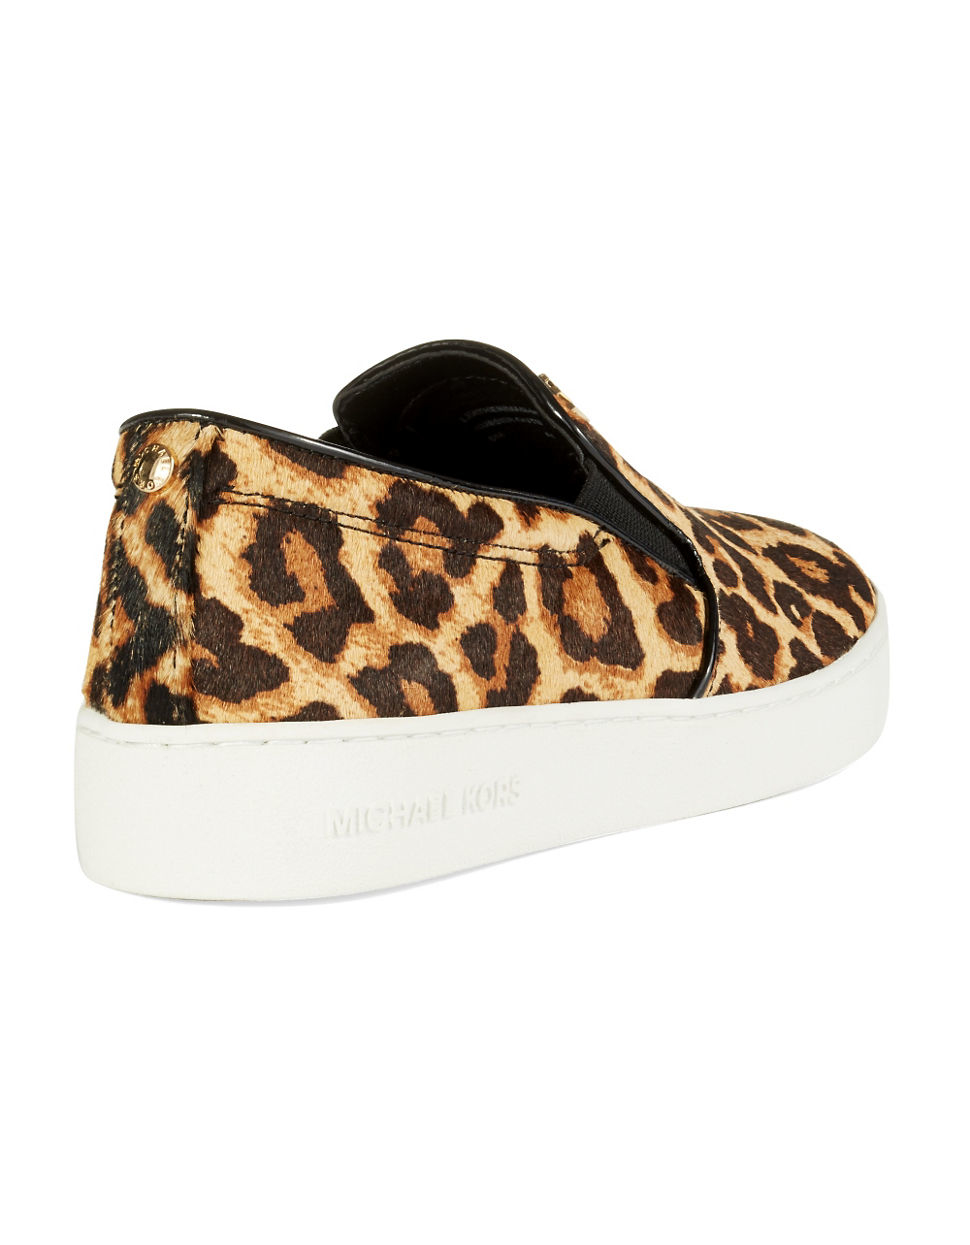 michael michael kors keaton leopard print calf hair sneakers in animal beige lyst. Black Bedroom Furniture Sets. Home Design Ideas